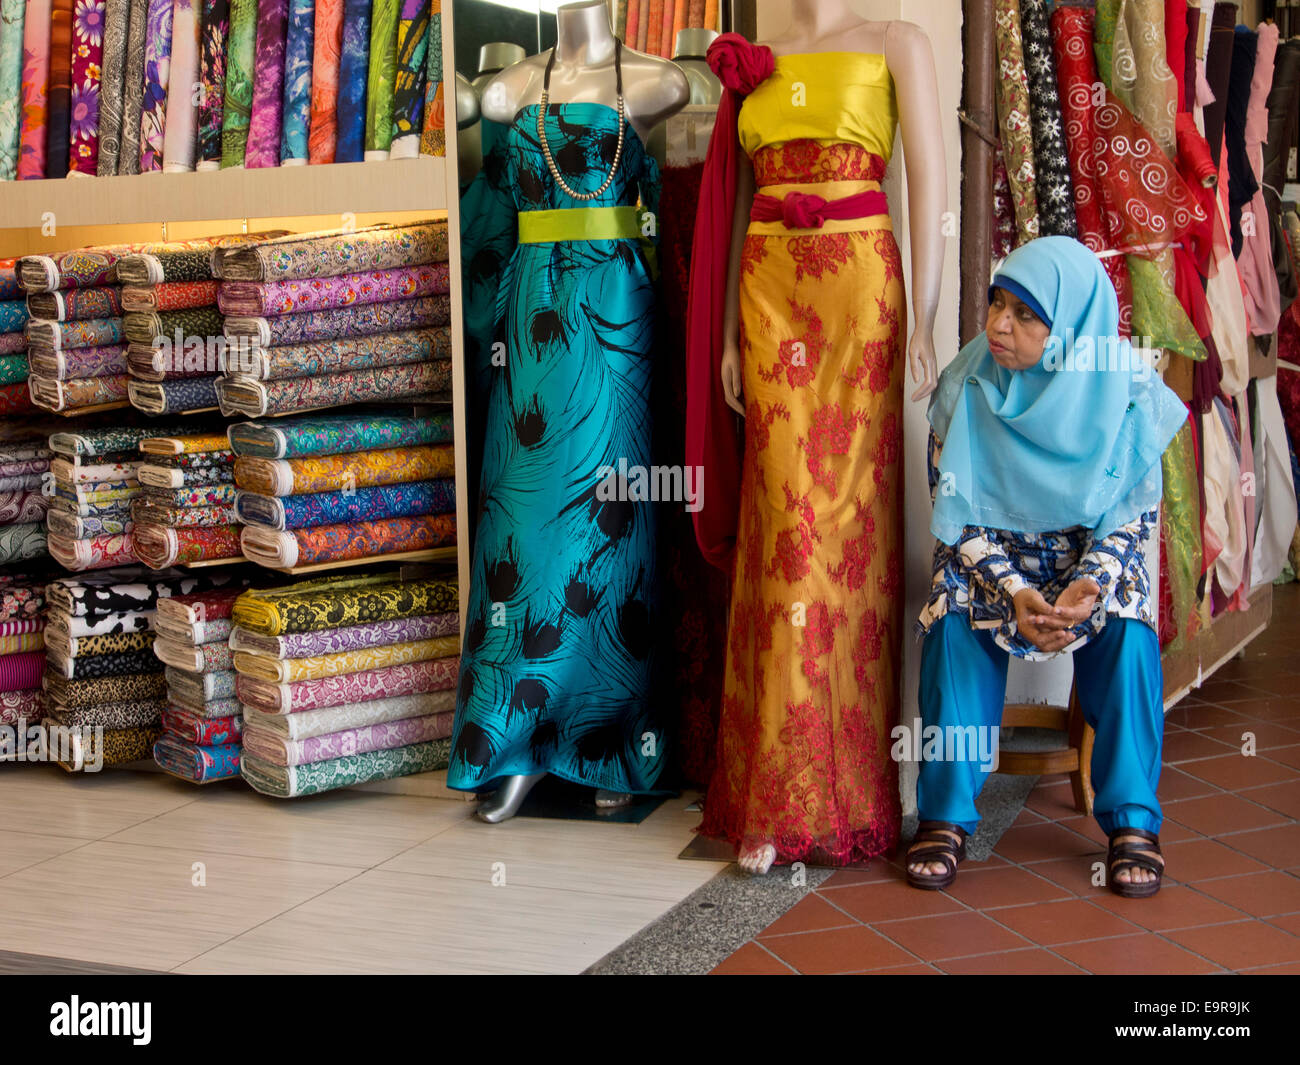 Muslim carpet and fashion and textiles shops in Arab Street